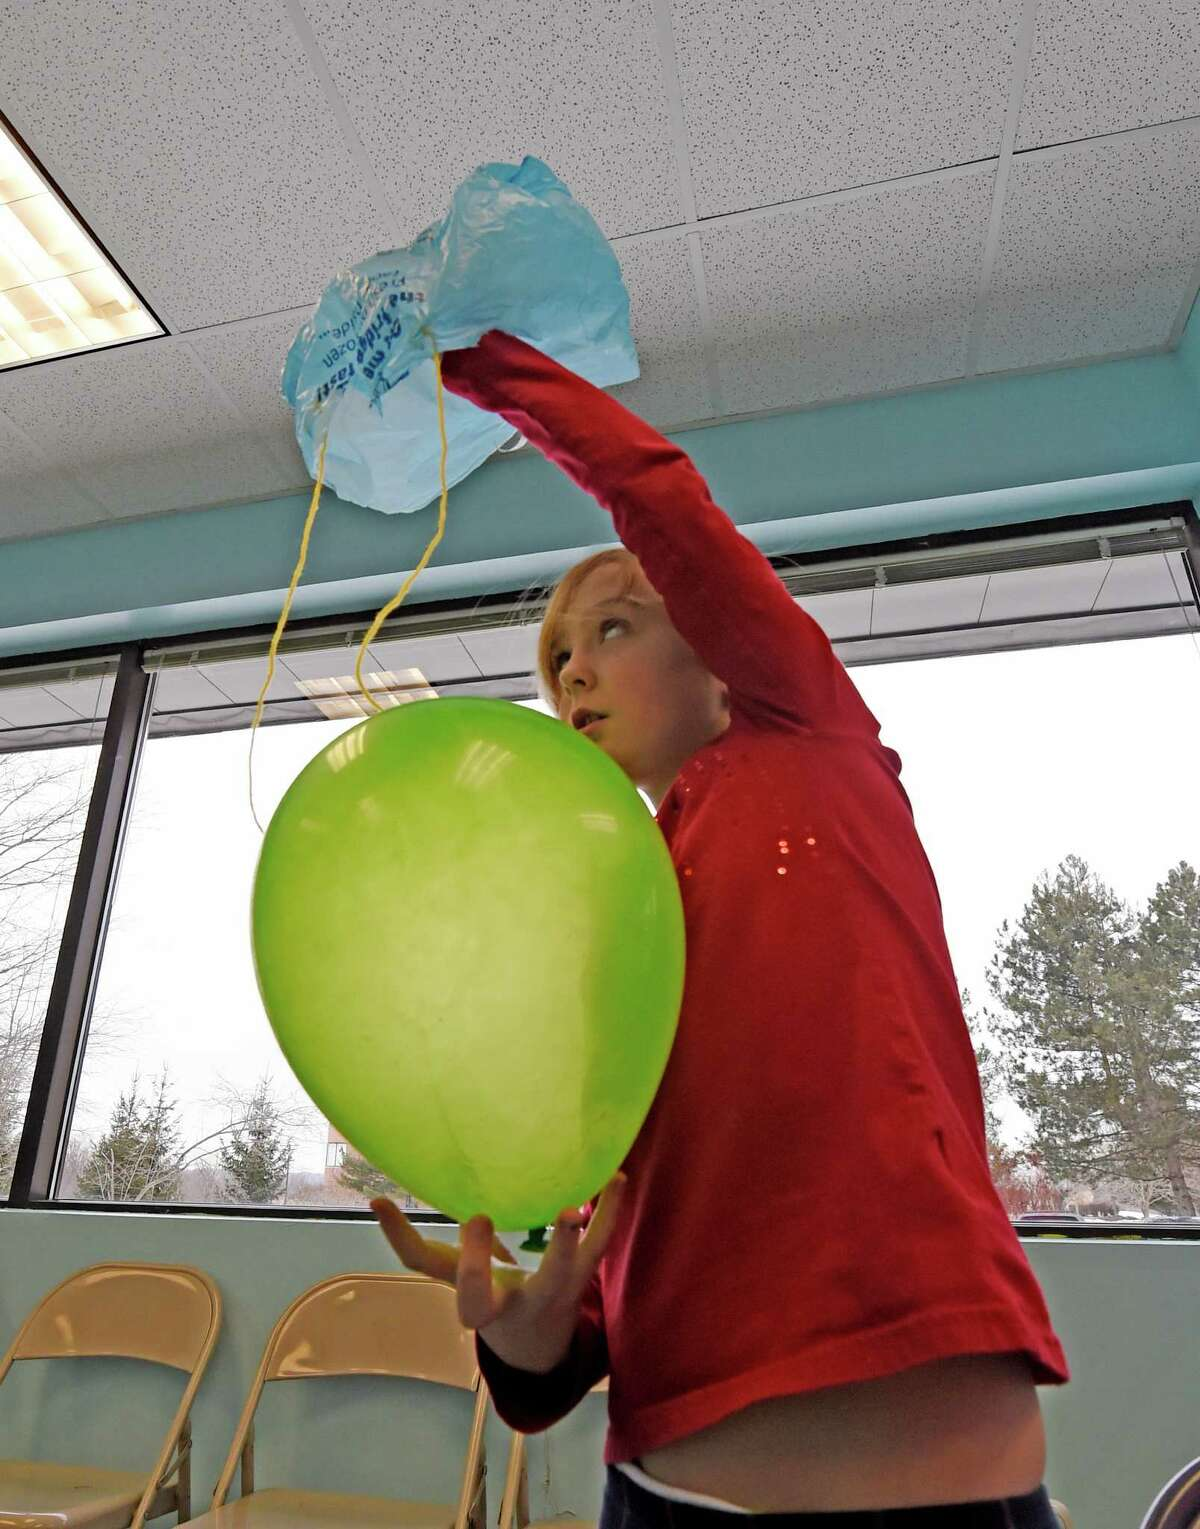 Elizabeth McDonald, 9, of Troy works on her gravity experiment during the Galileo's Gravity Games held at the Children's Museum of Science + Technology during School Break Camp Feb. 15, 2016, in Troy, N.Y. School Break Camp runs all this week during the winter break for schools in the area. (Skip Dickstein/Times Union)